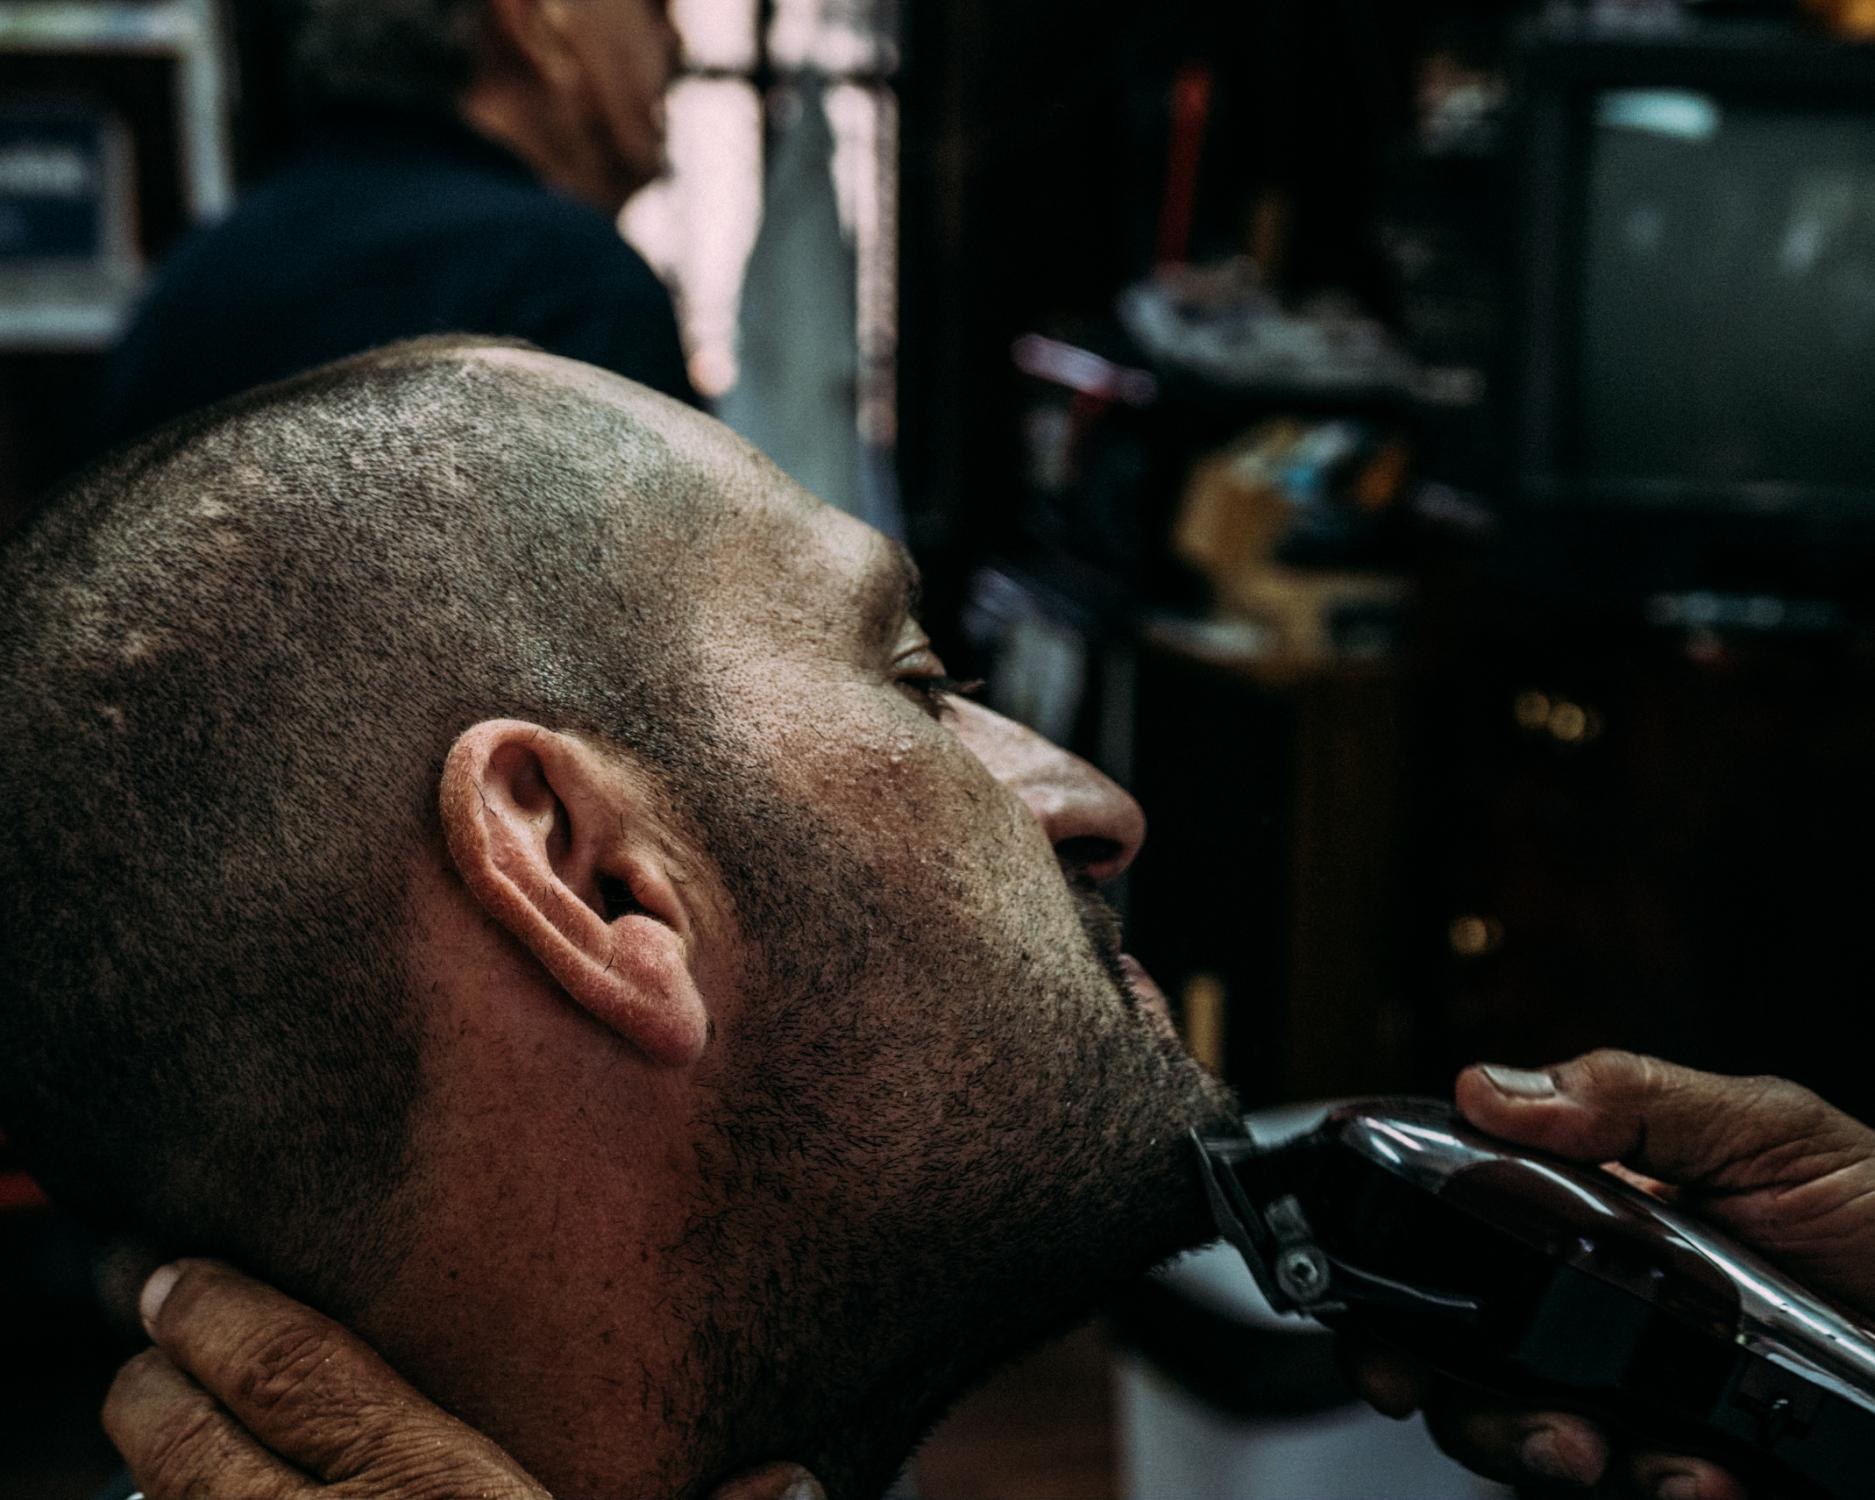 """The shop is open from 9 am to 6 pm sharp, except summer nights. During the warmer months, Eladio and old friends spend time playing dominoes and listening to traditional Puerto Rican music in-between haircuts. Here, Eladio finishes up the final hair cut of the night before starting """"la janguear"""" (the hang out)."""